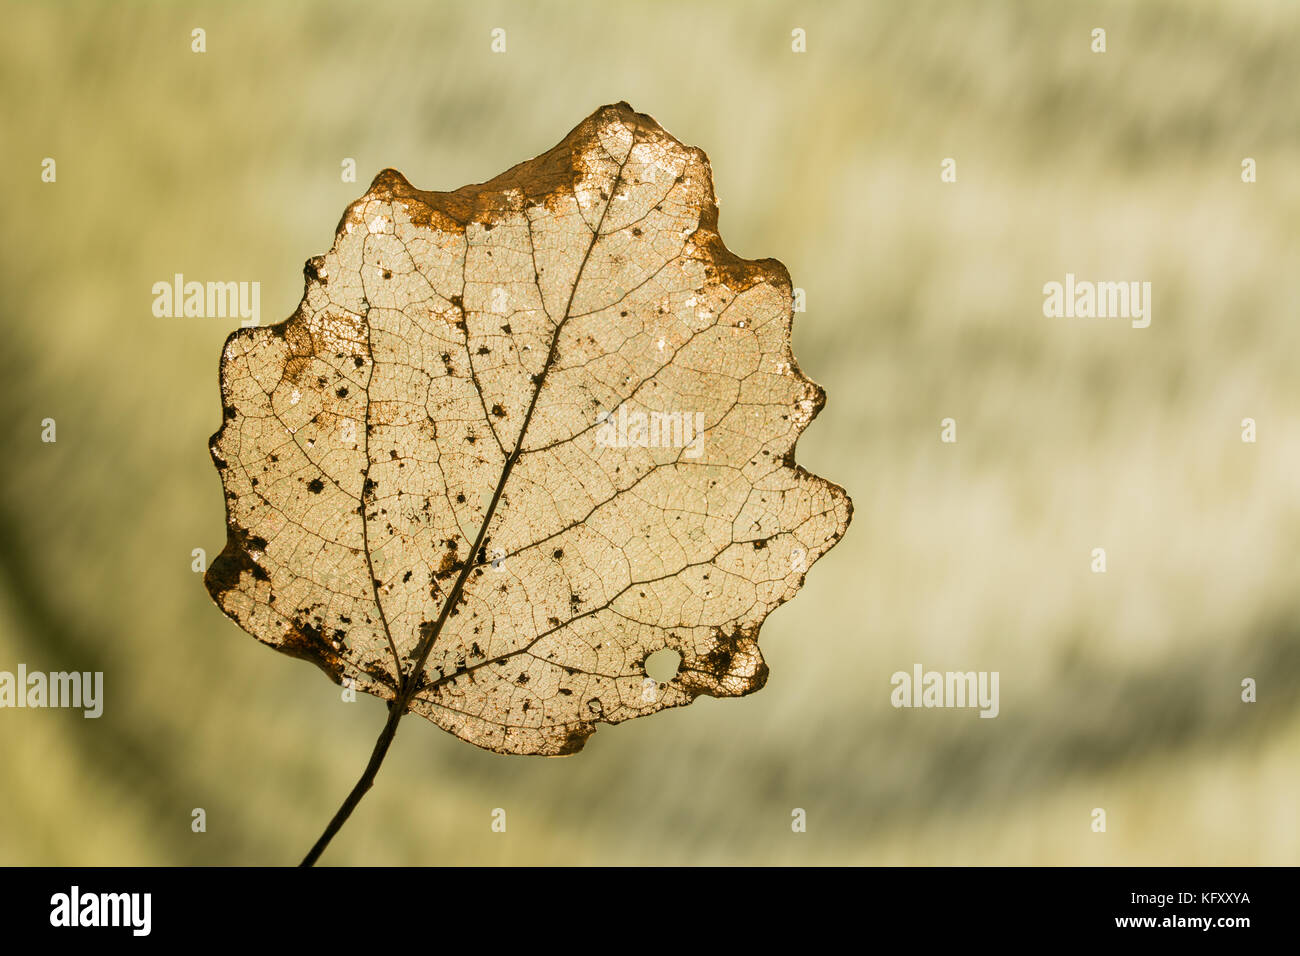 Veins of a leaf partially decomposed during winter - silhouette on greenish  background Stock Photo